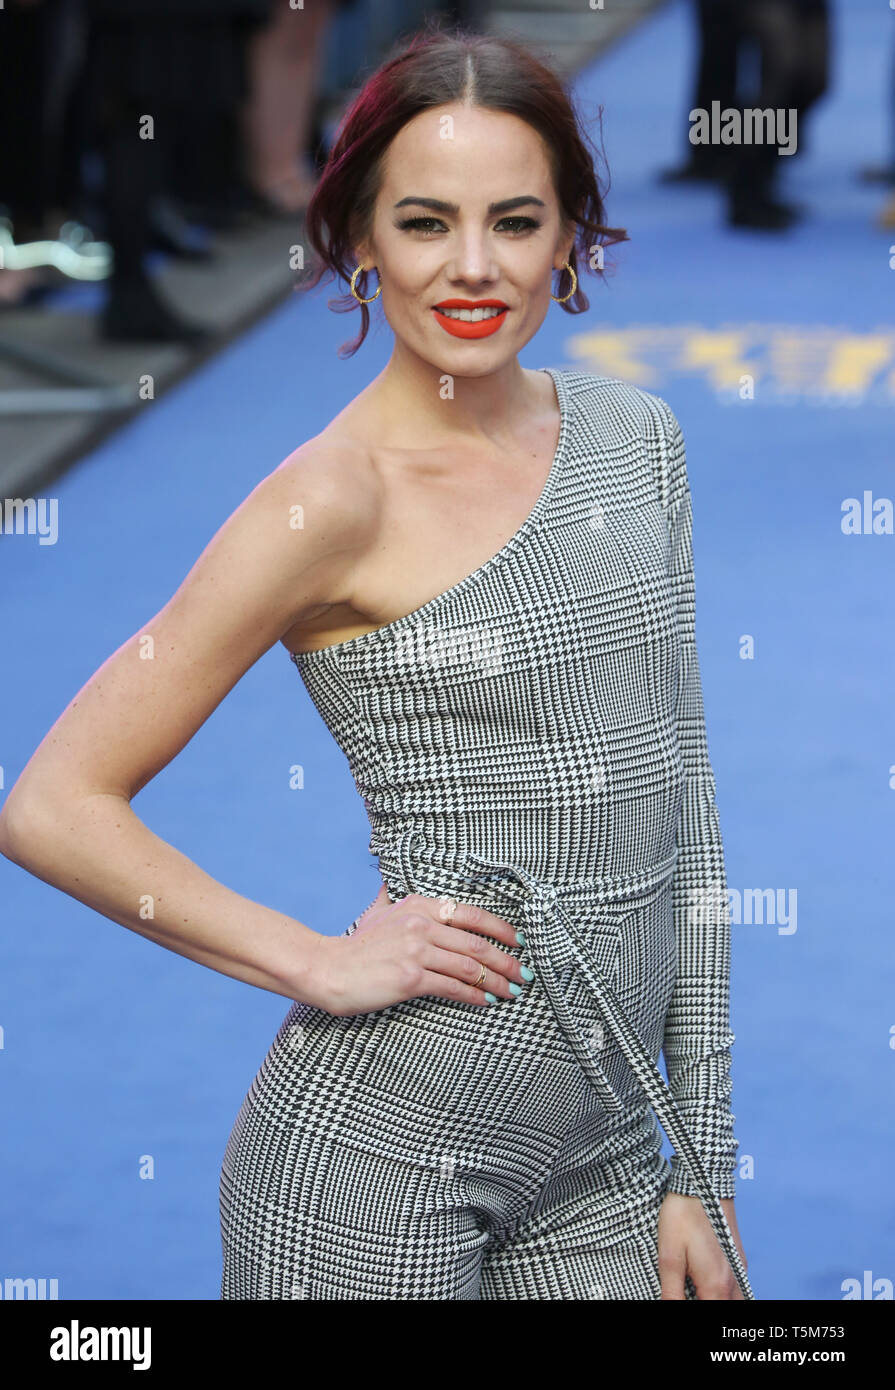 Emma Conybeare attends the European Premiere of Extremely Wicked, Shockingly Evil and Vile at The Curzon Mayfair in London - Stock Image